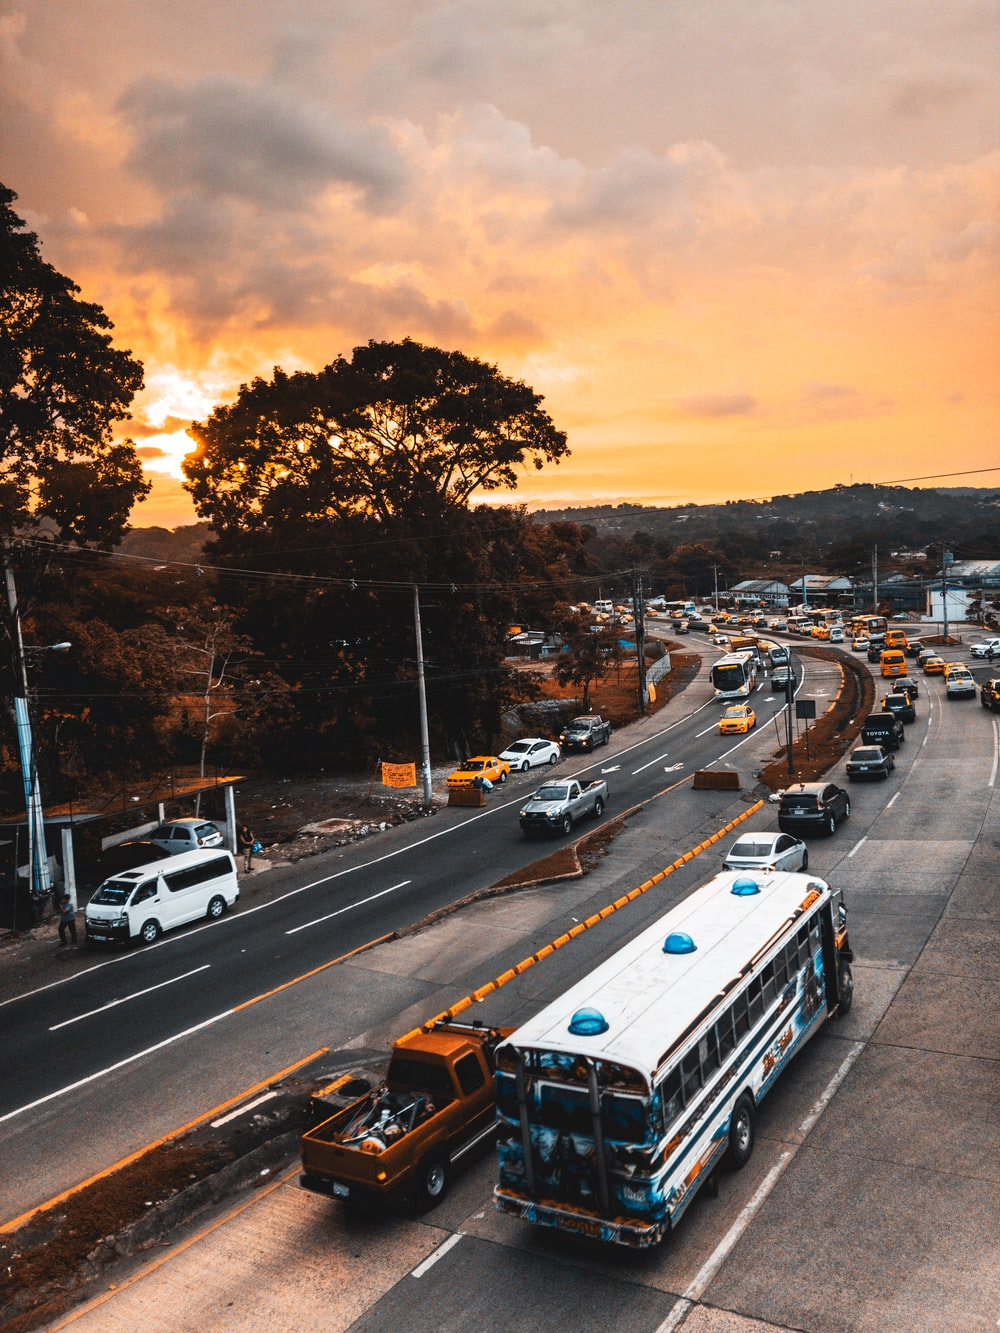 white bus and vehicles on road during golden hour